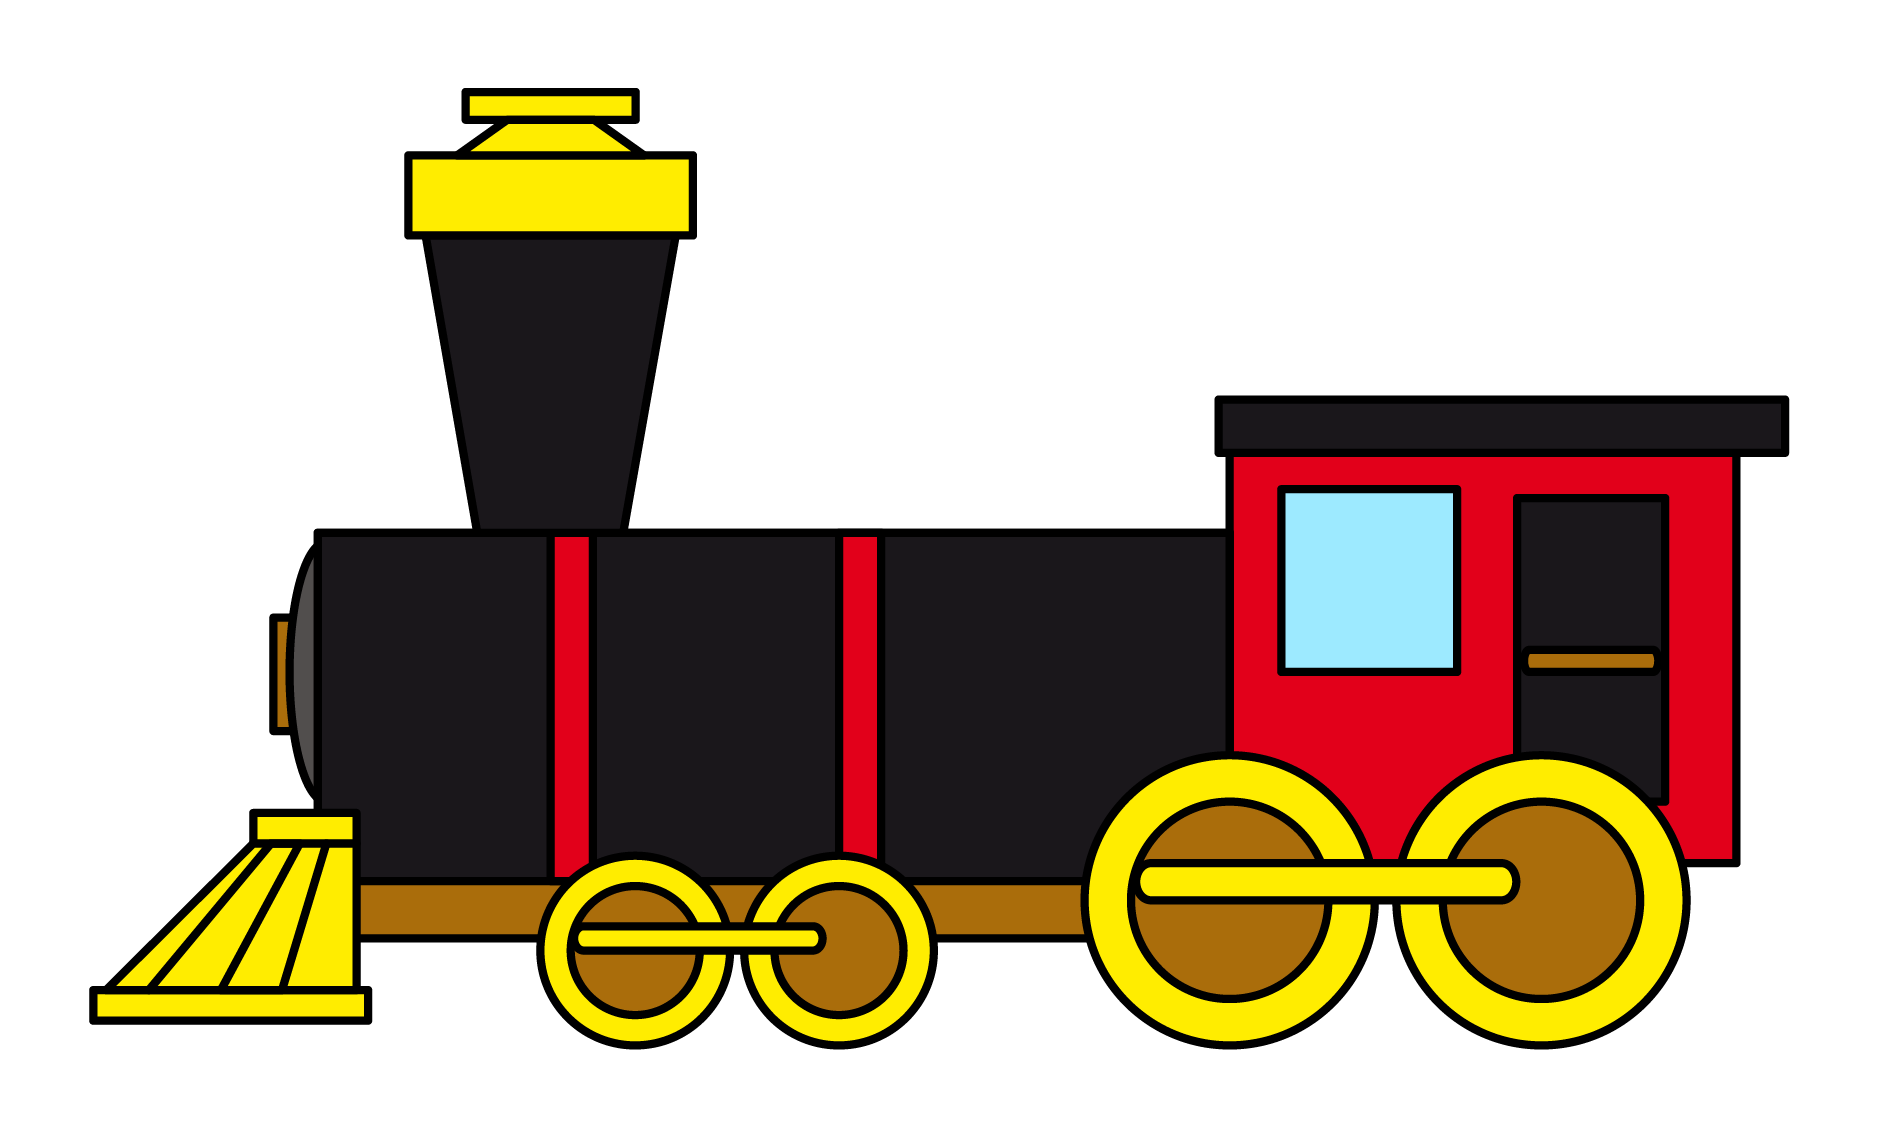 Steam Train Engine Clip Art   Clipart Panda   Free Clipart Images